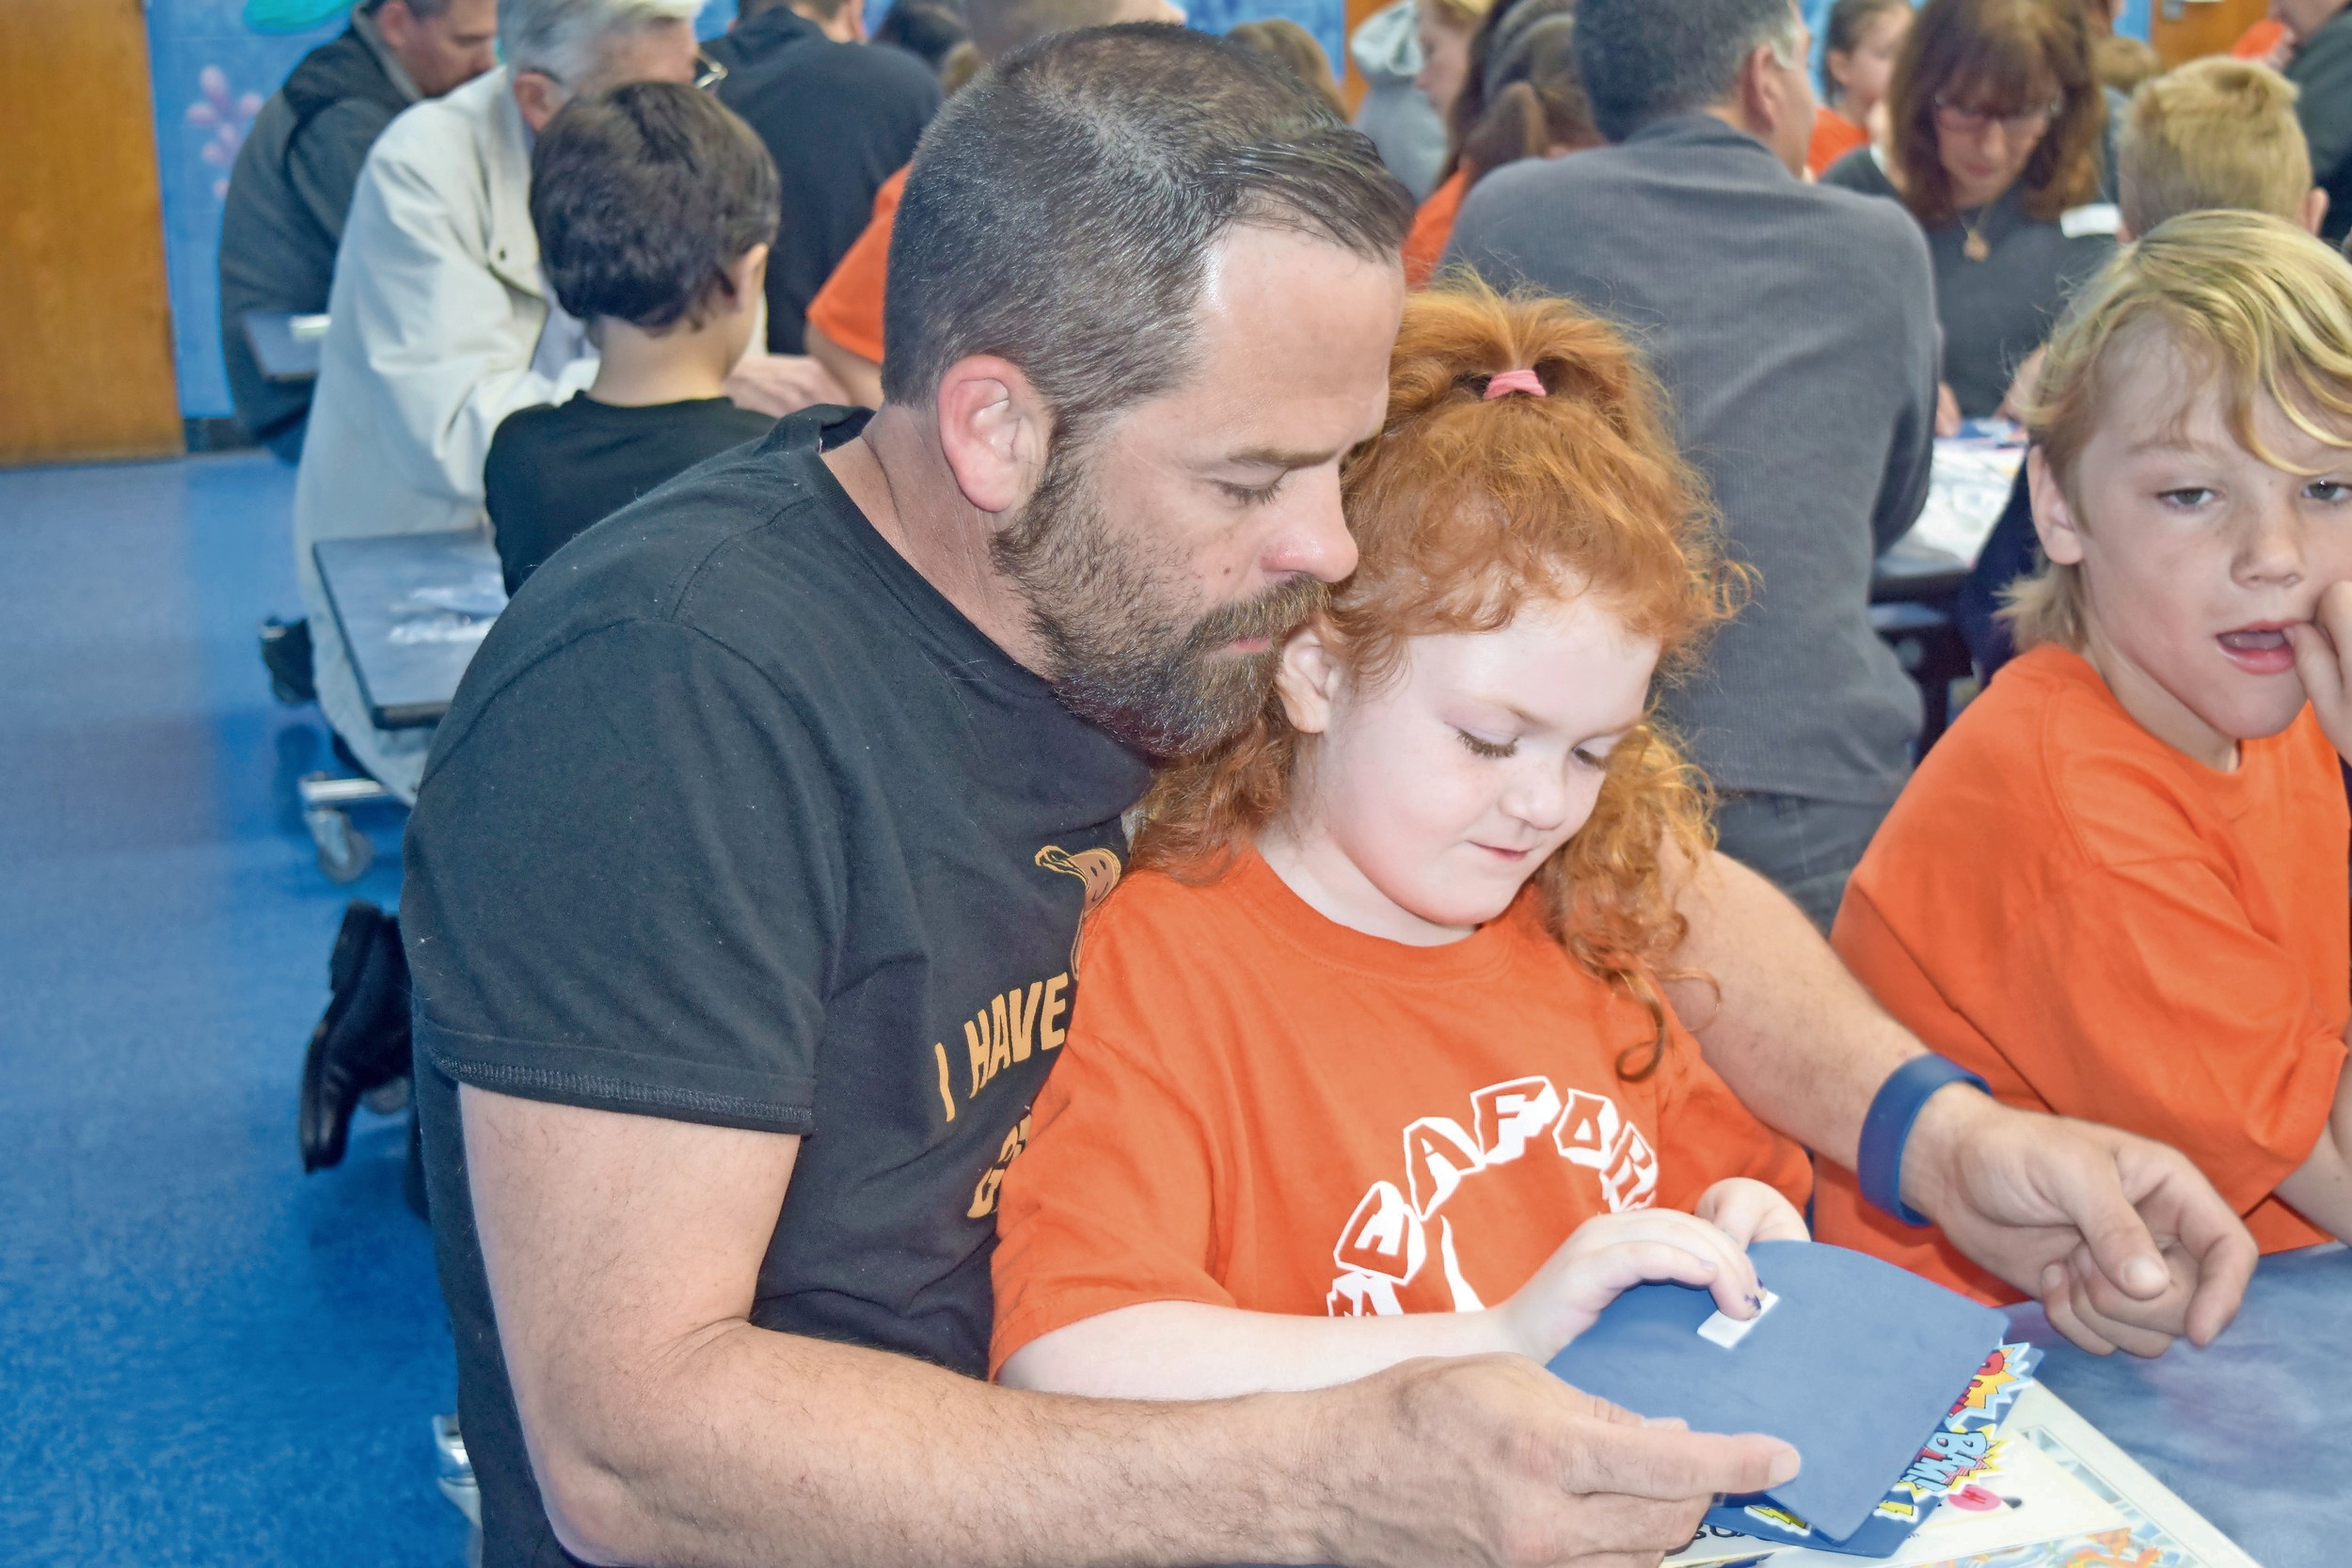 Sadie St. Pierre, 7, created a craft with her father, Charlie St. Pierre, at Harbor Elementary School's Someone Special Day on May 5.